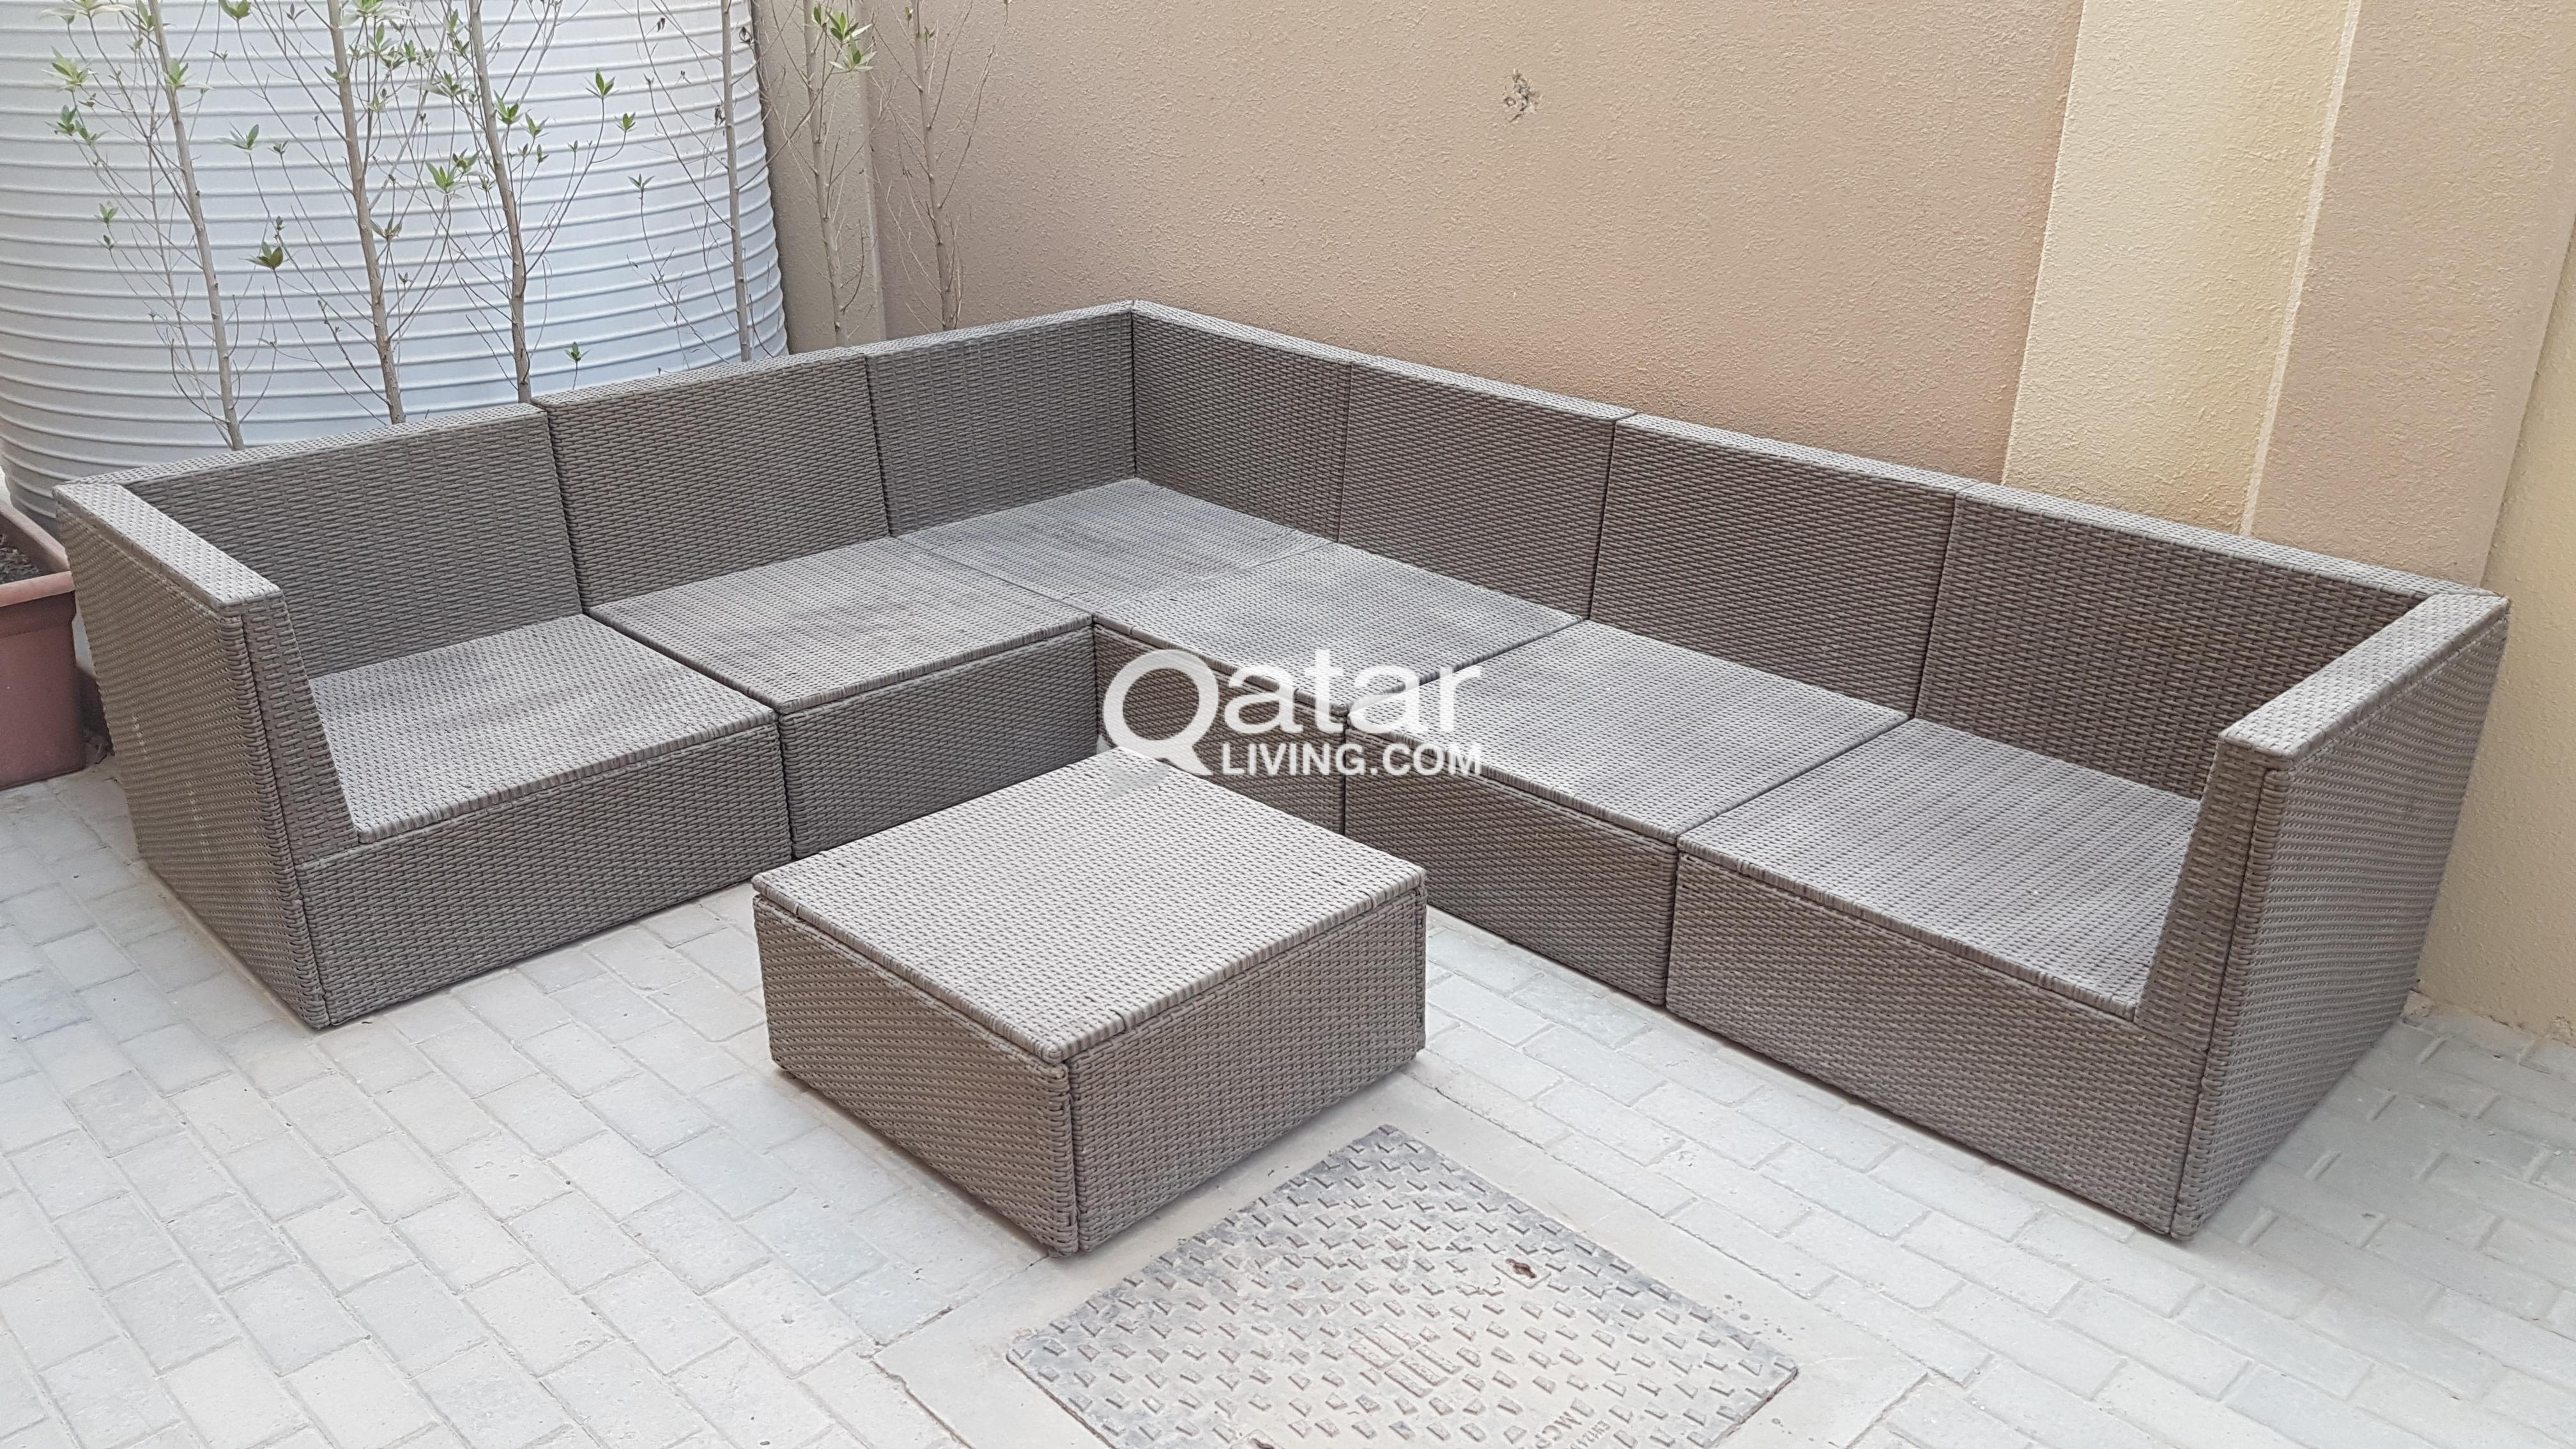 lounging furniture. Title; Title. Information. IKEA Outdoor Lounging Furniture